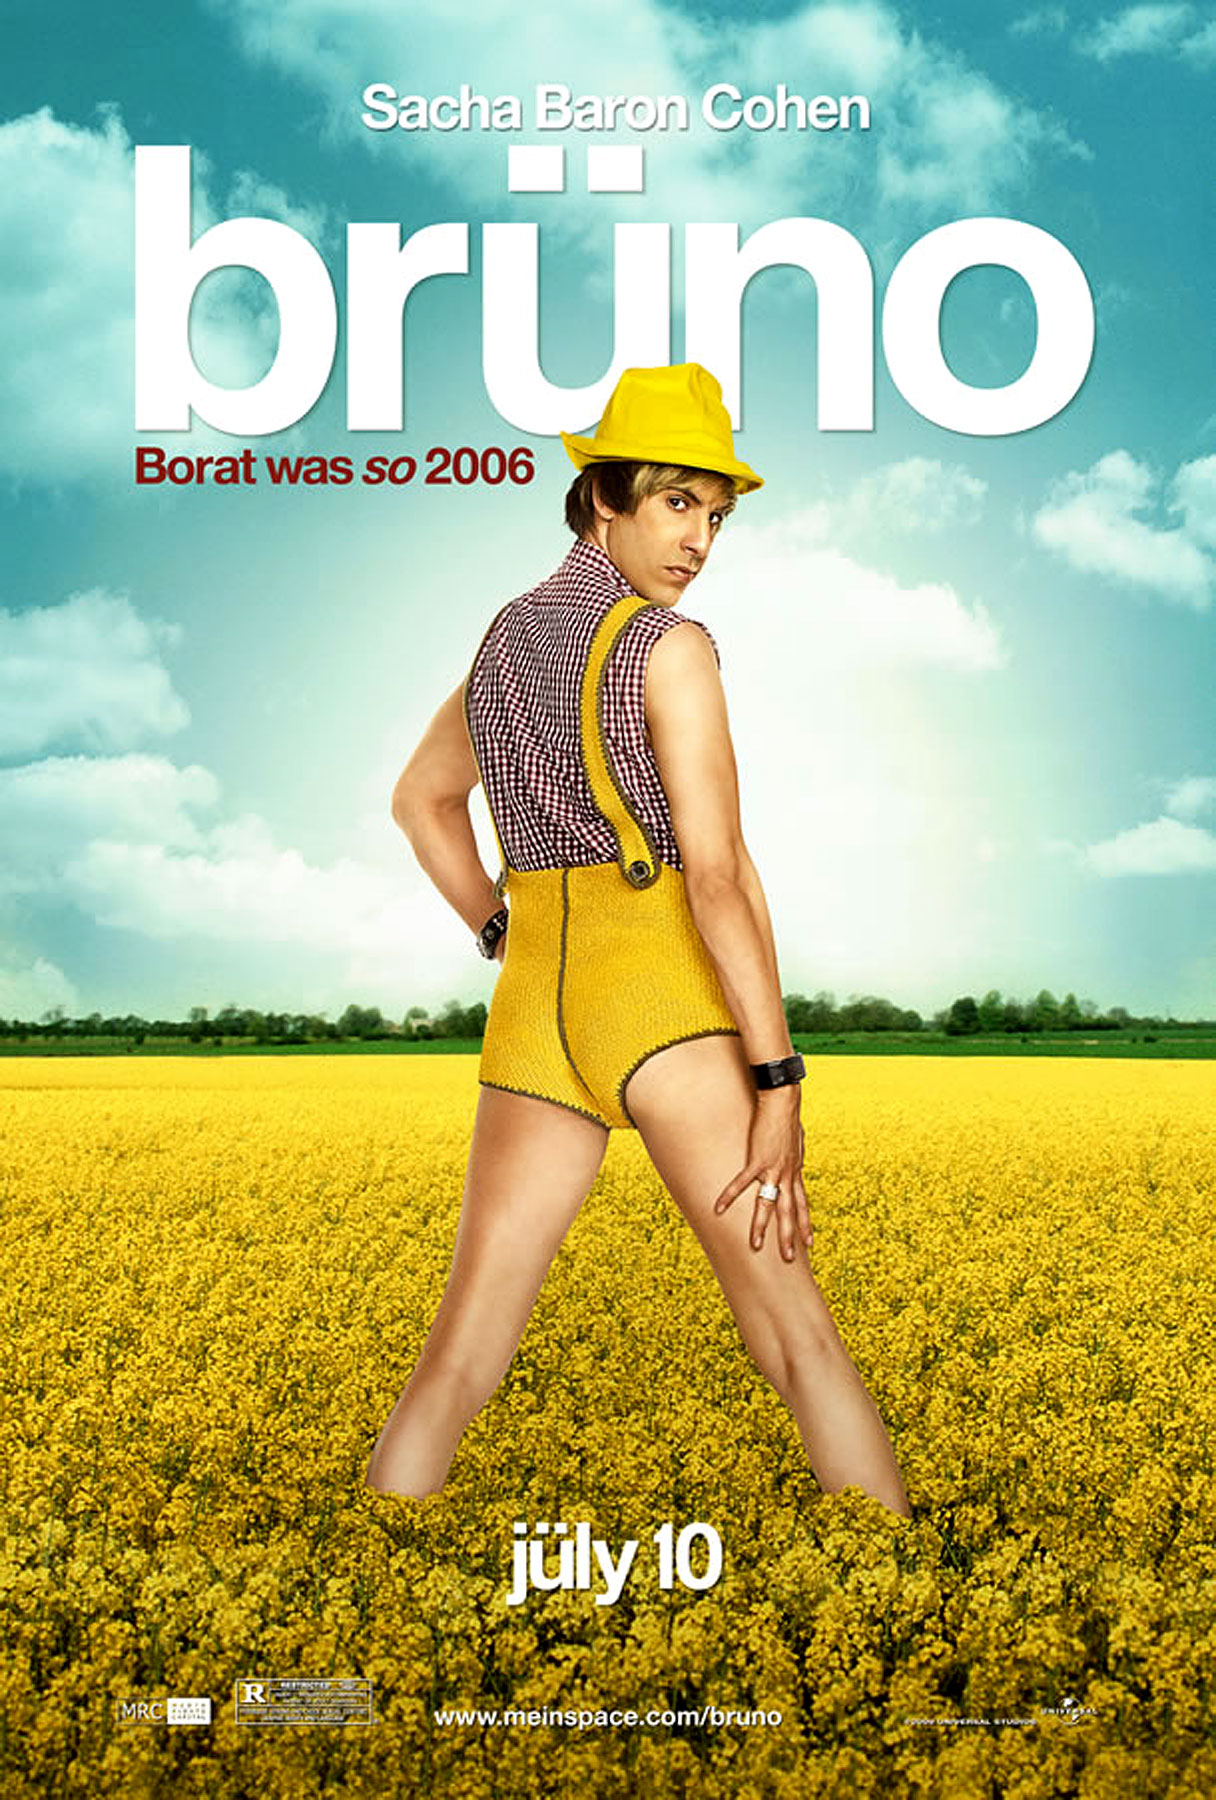 Bruno Shorts Himself in New Movie Poster